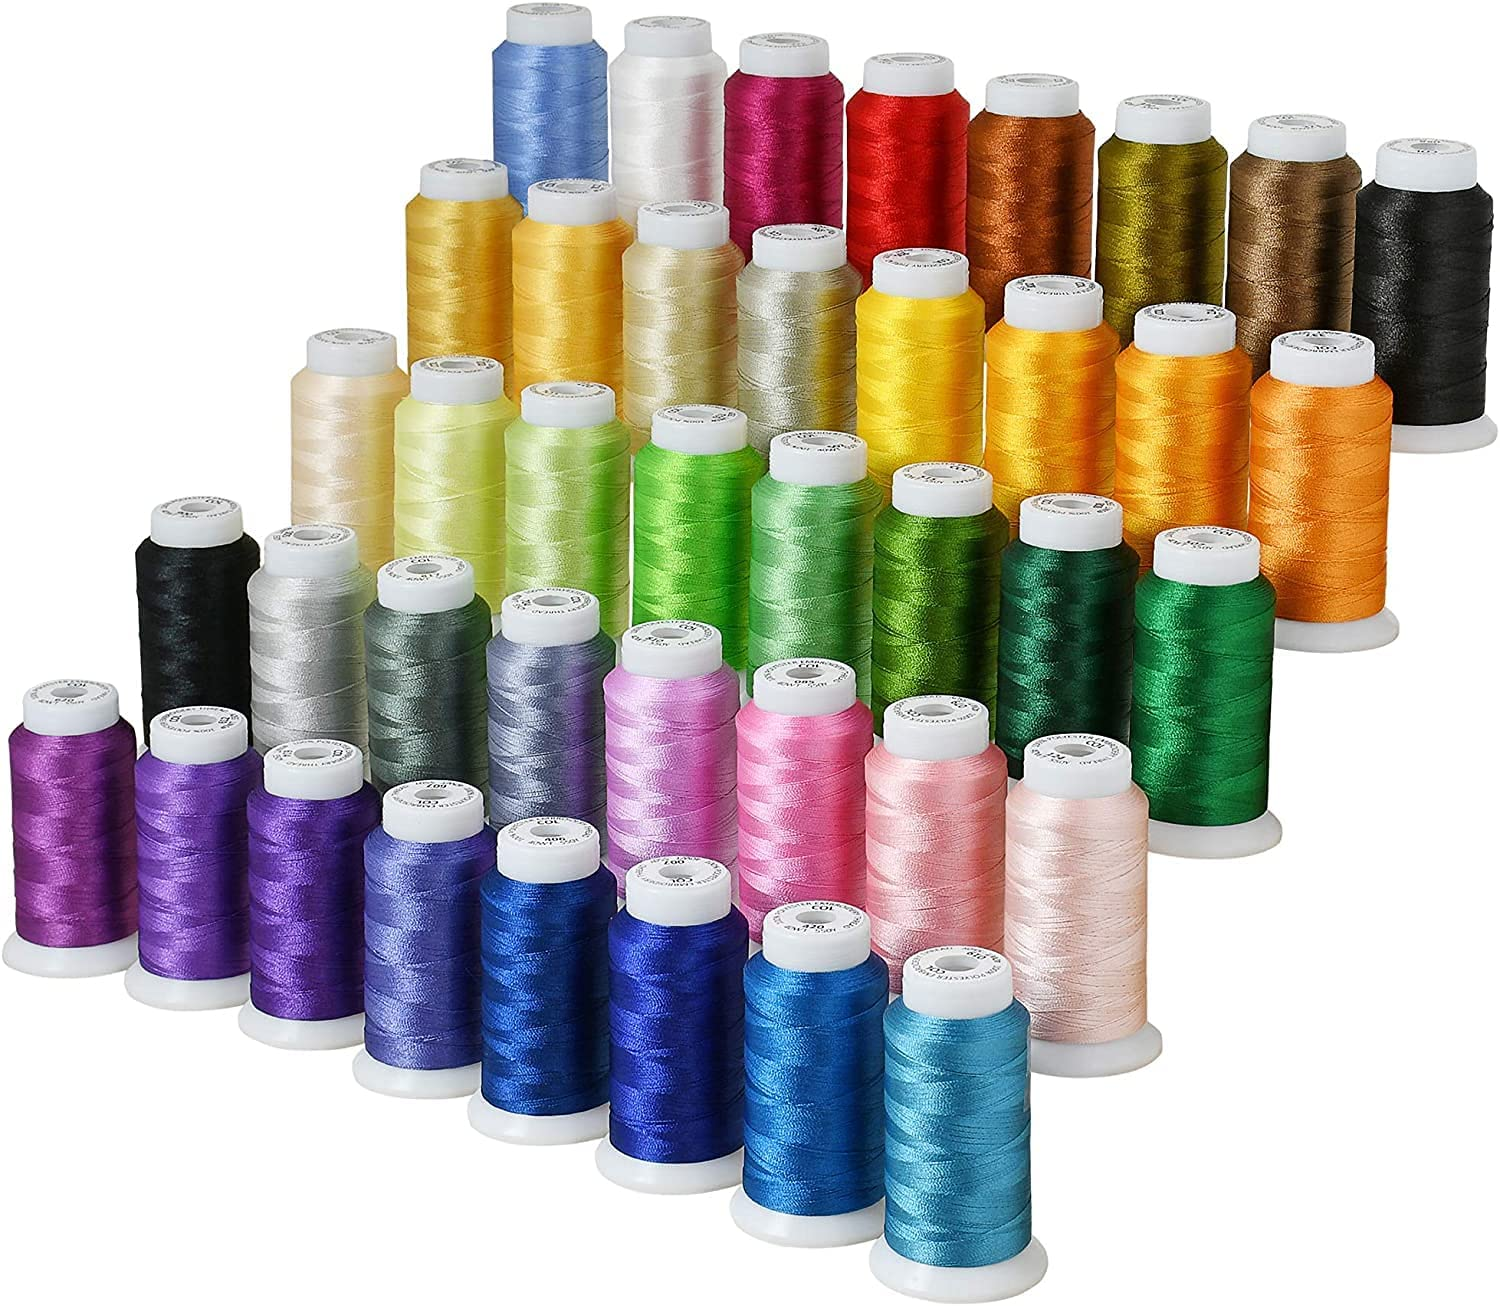 40 San Jose Mall Colors Polyester Embroidery Machine Attention brand Ba for Brother Kit Thread